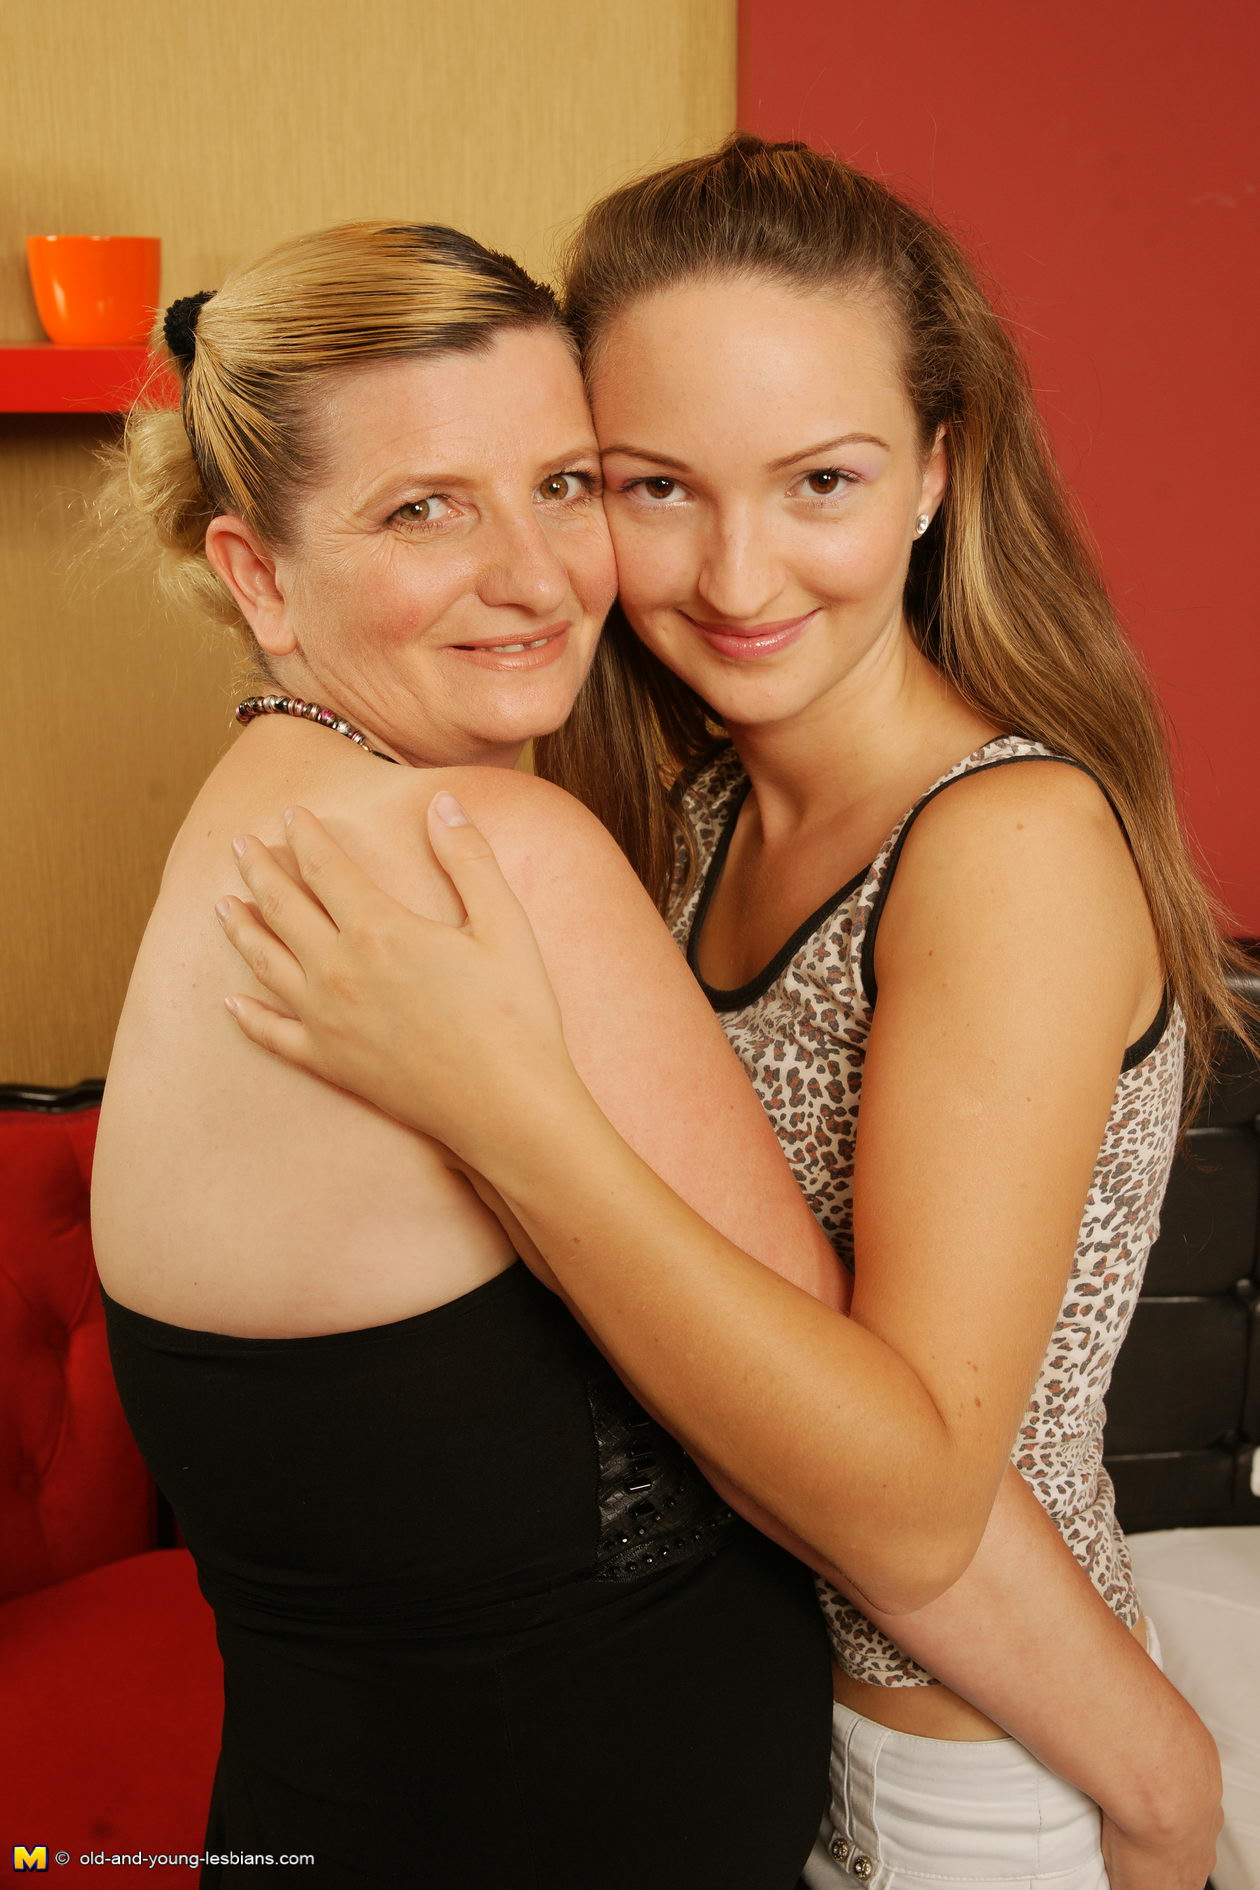 Old and milf lesbian lovers